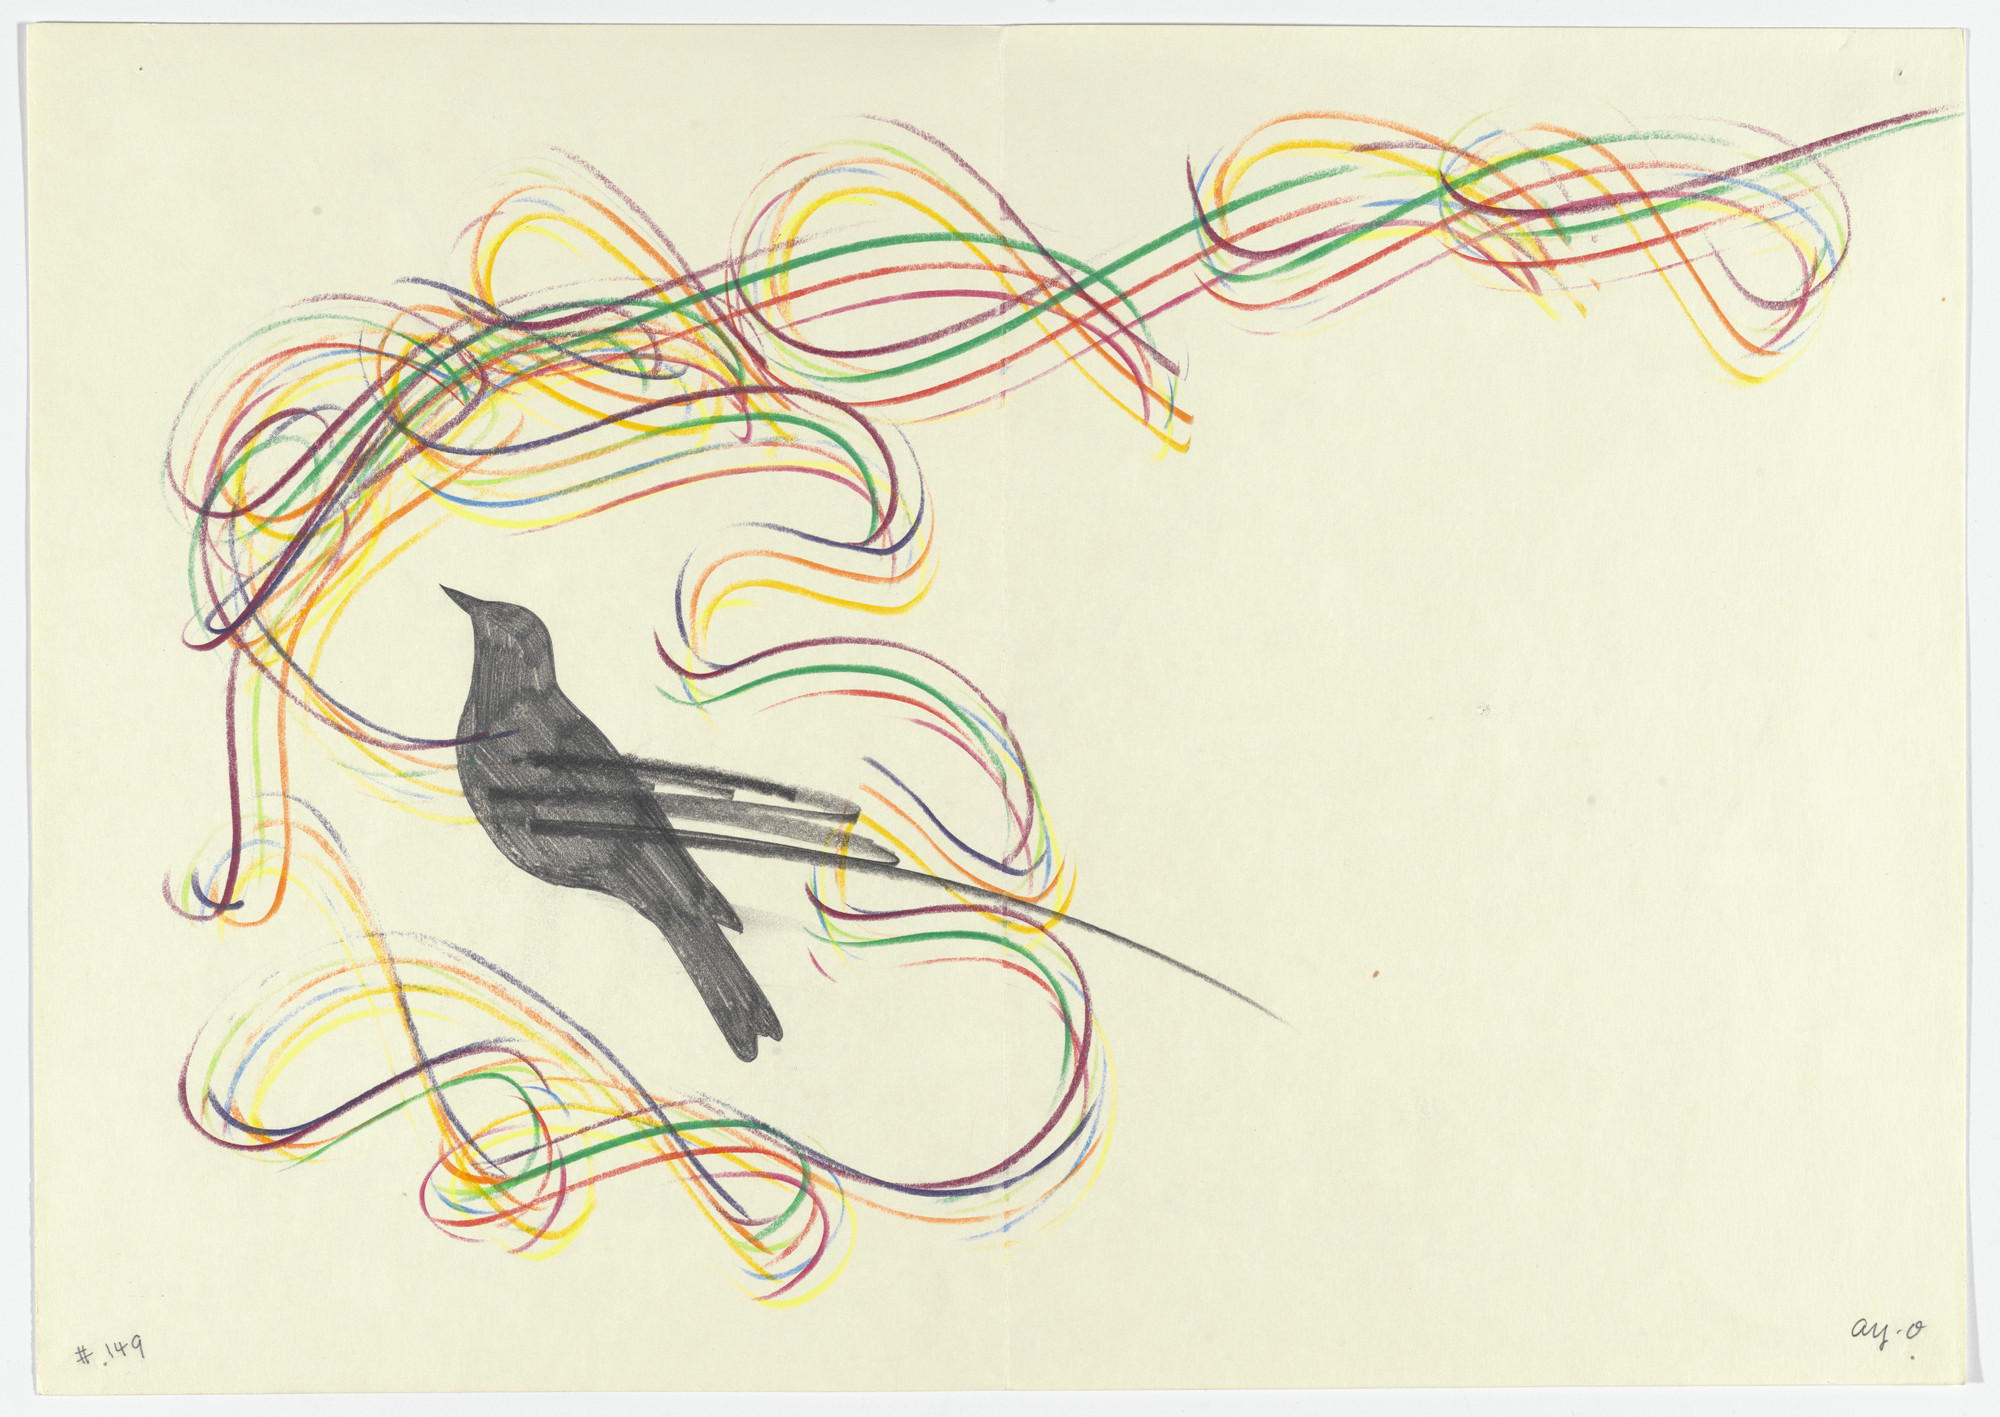 Ay-O. Double page plate (folios 9 and 10 verso) from Ouzel. 1971, published 1972